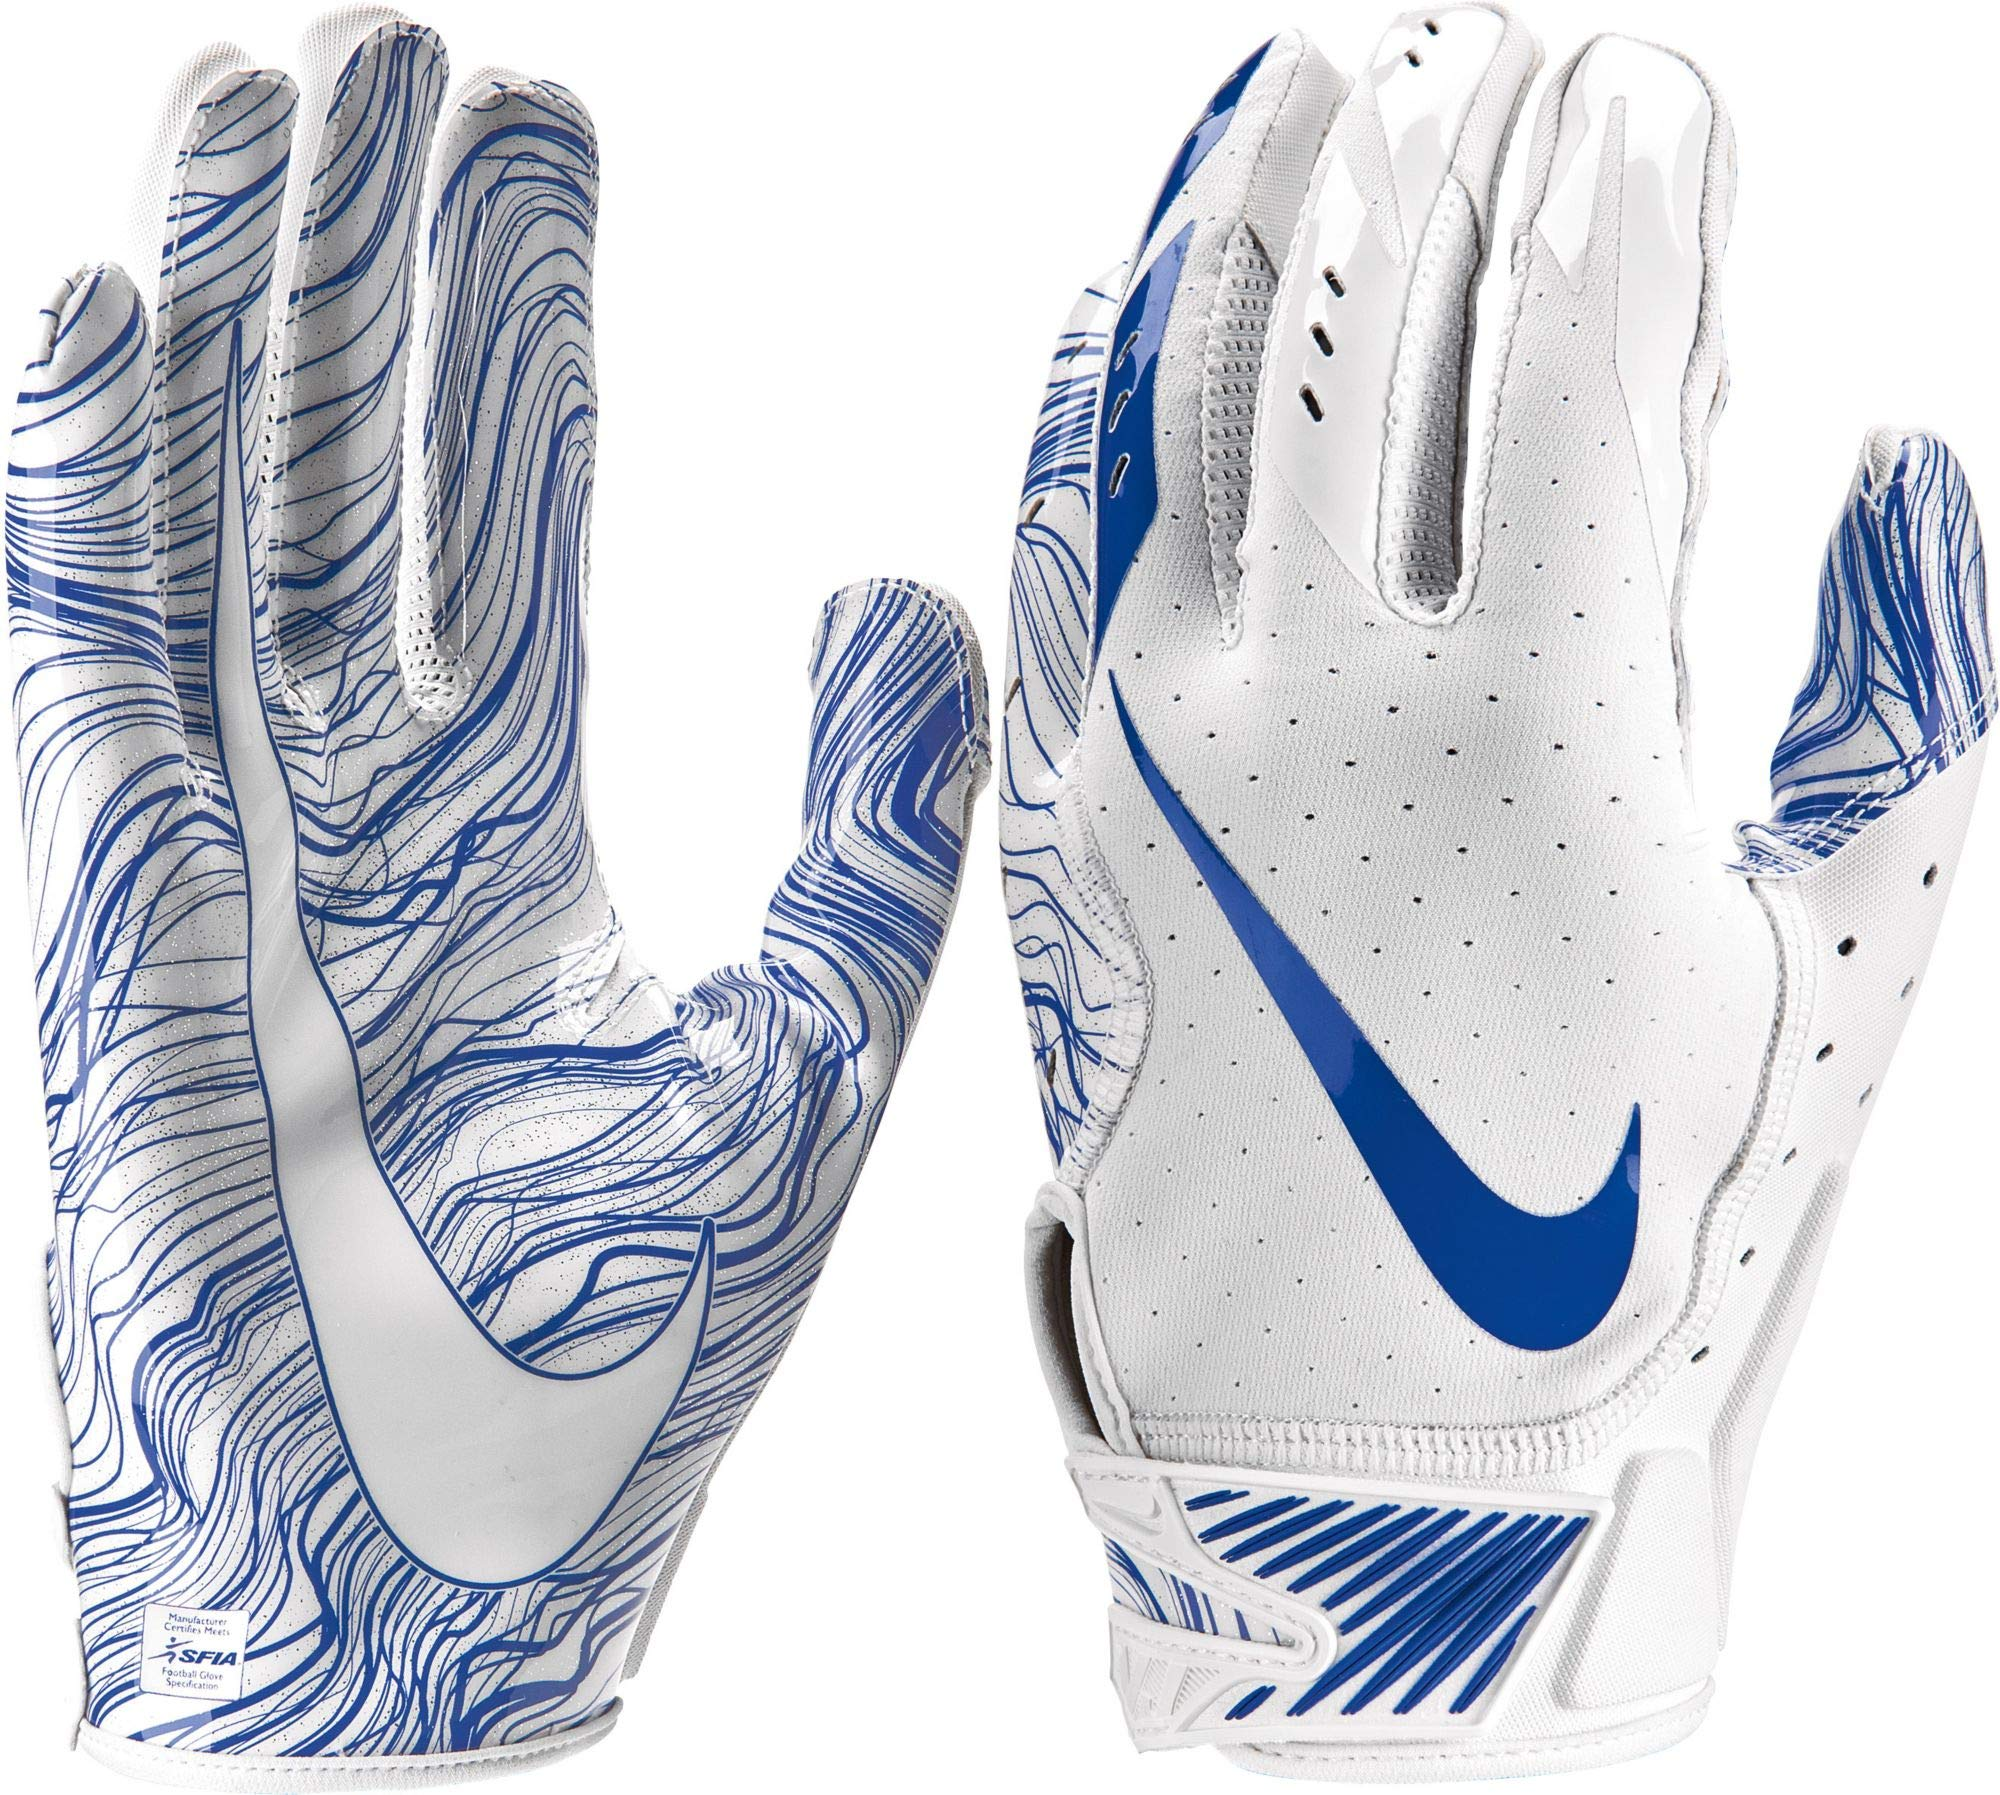 Nike Adult Vapor Jet 5.0 Receiver Gloves 2018 (White/Royal, Small)